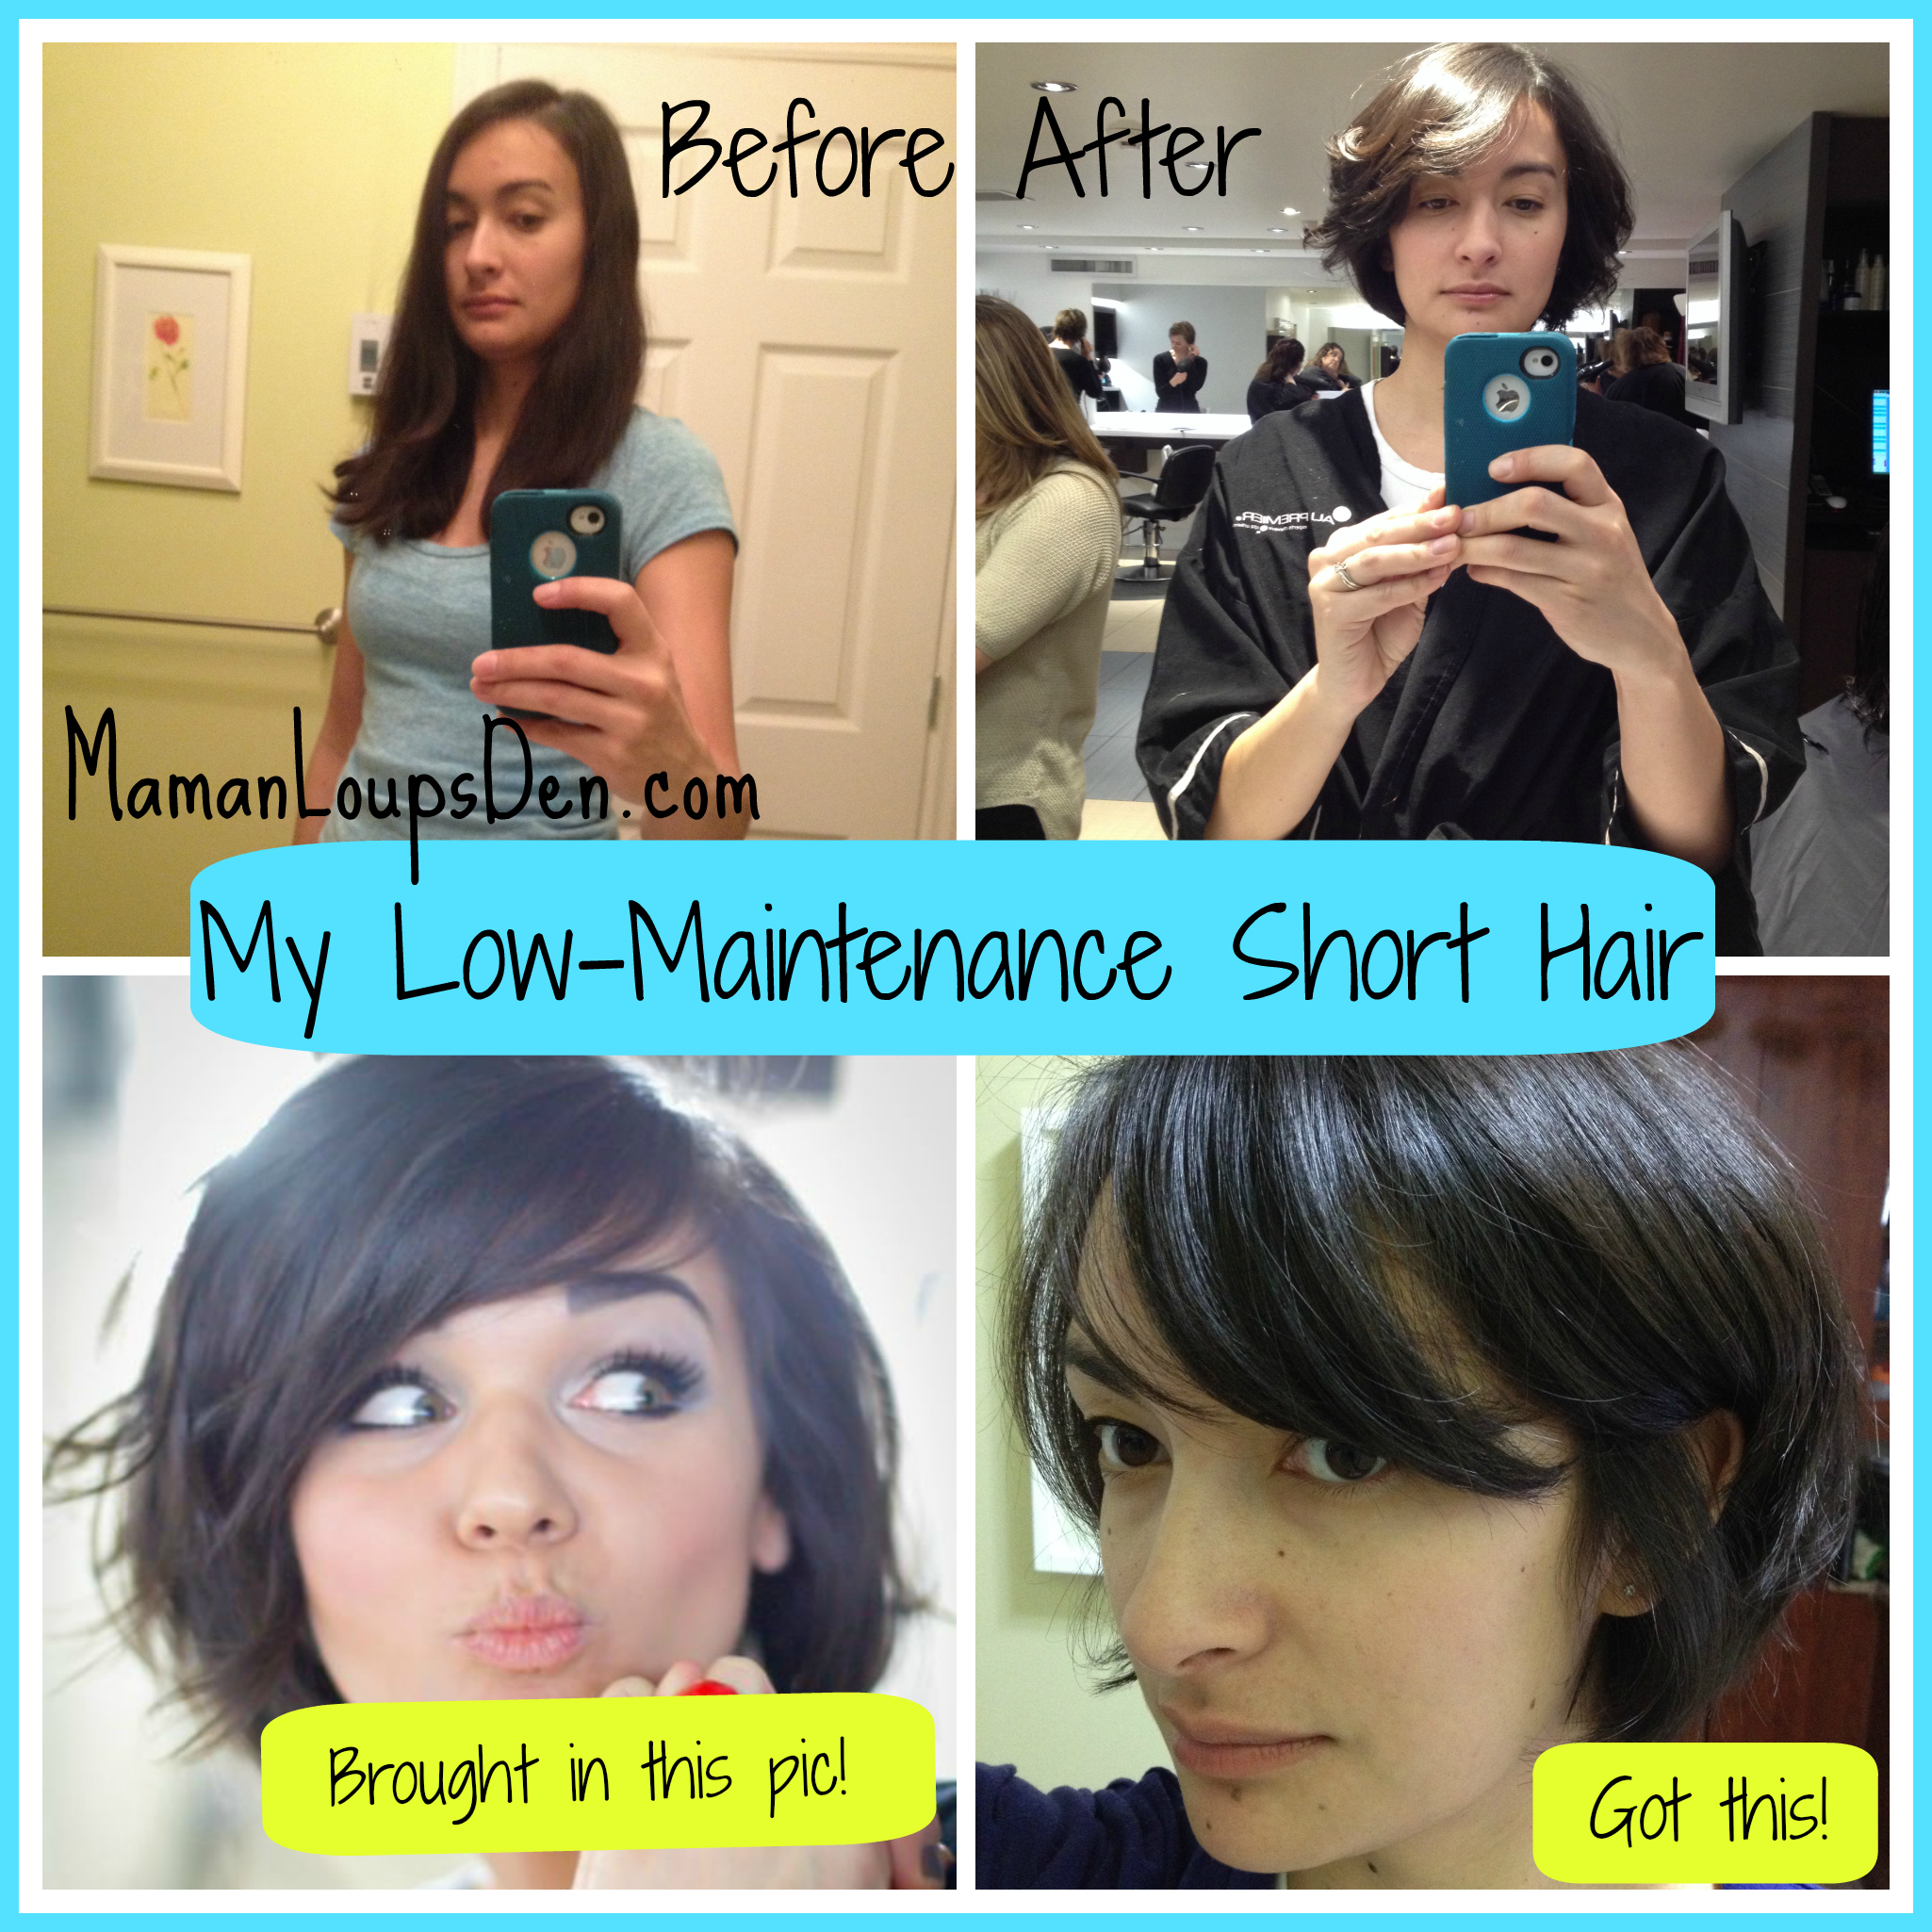 Low maintenance short hair cut for Mamas!